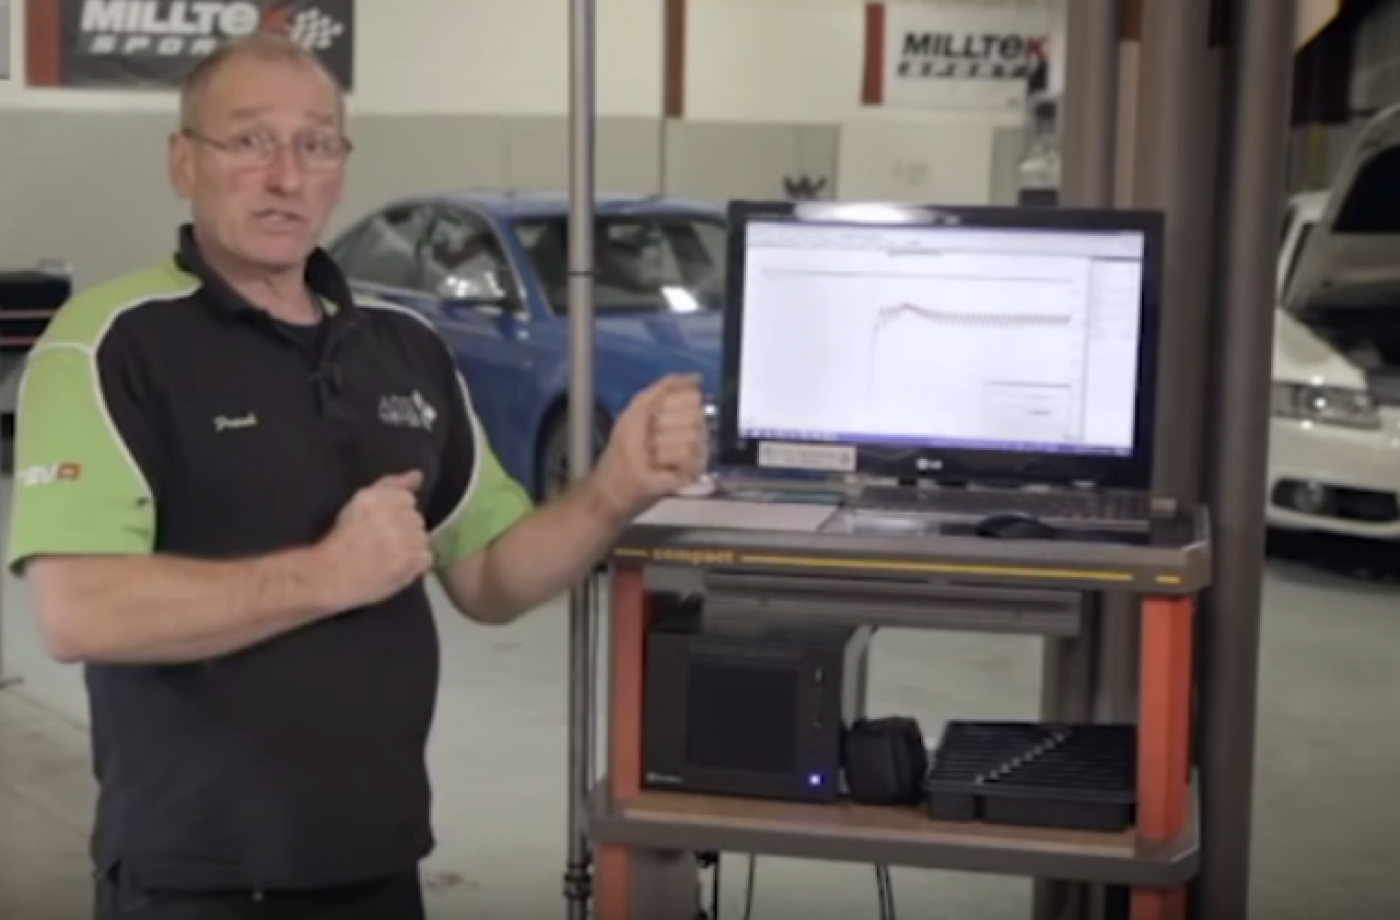 Watch: Frank Massey shows how to test voltage drop against load with PicoScope